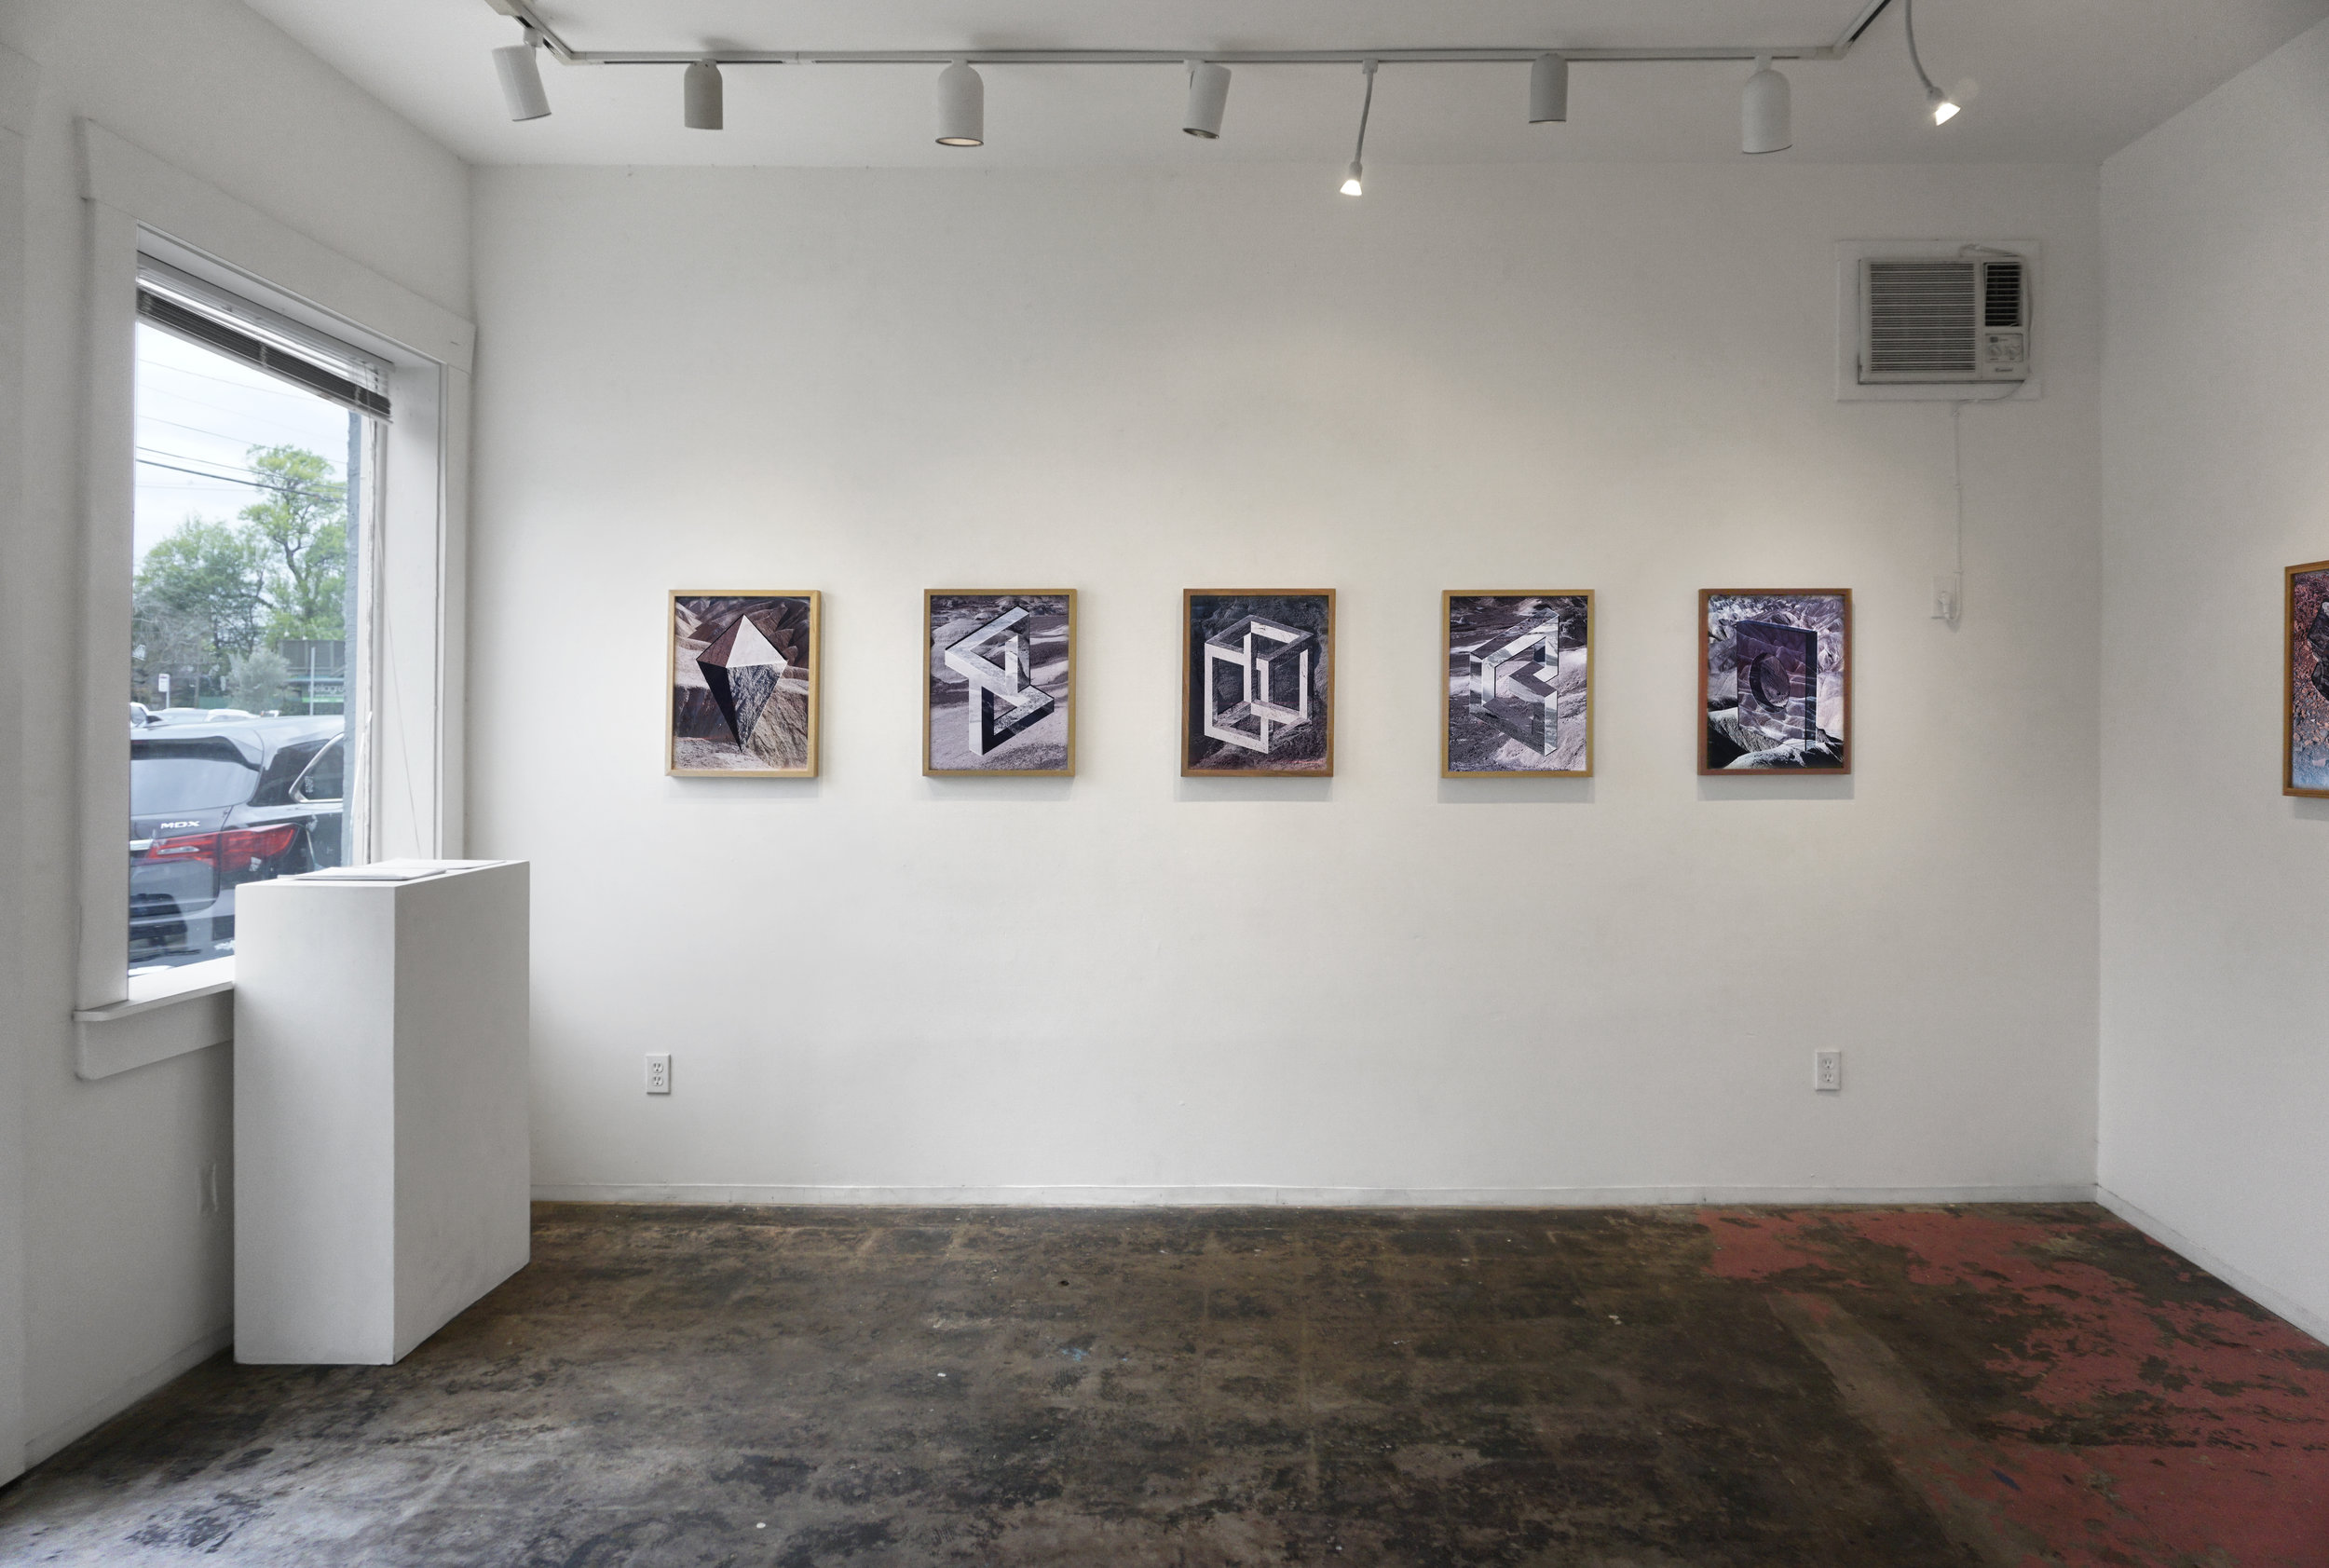 Installation view  Optical Project  Houston ,TX   https://www.deasil.art/projects/2019/3/10/charlie-kitchen-interpolations